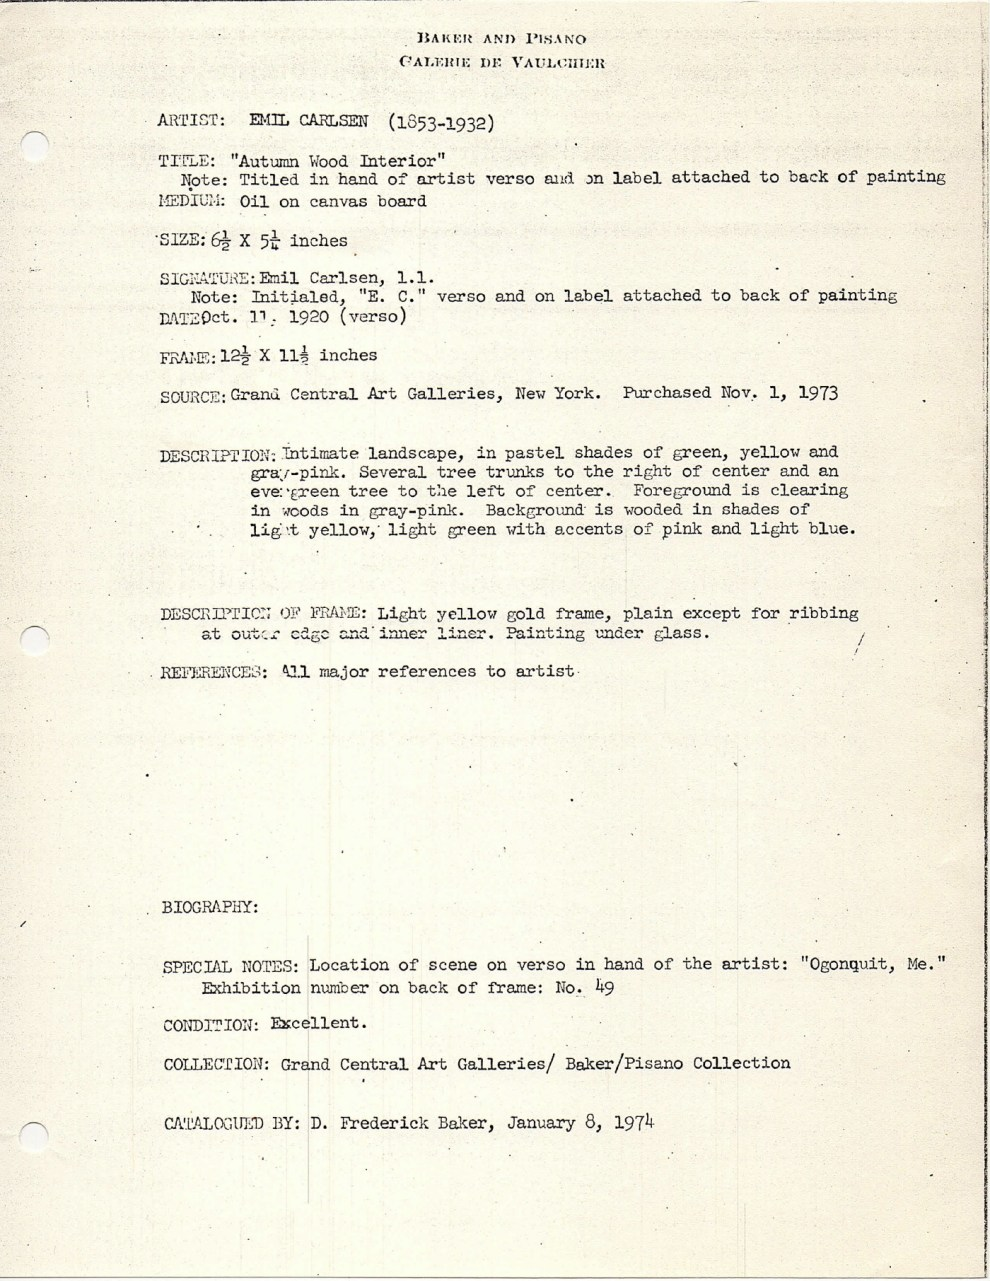 """""""Baker-Pisano [1949-2000] collection notes on Emil Carlsen Works"""" by D. Frederick Baker, January 8, 1974"""